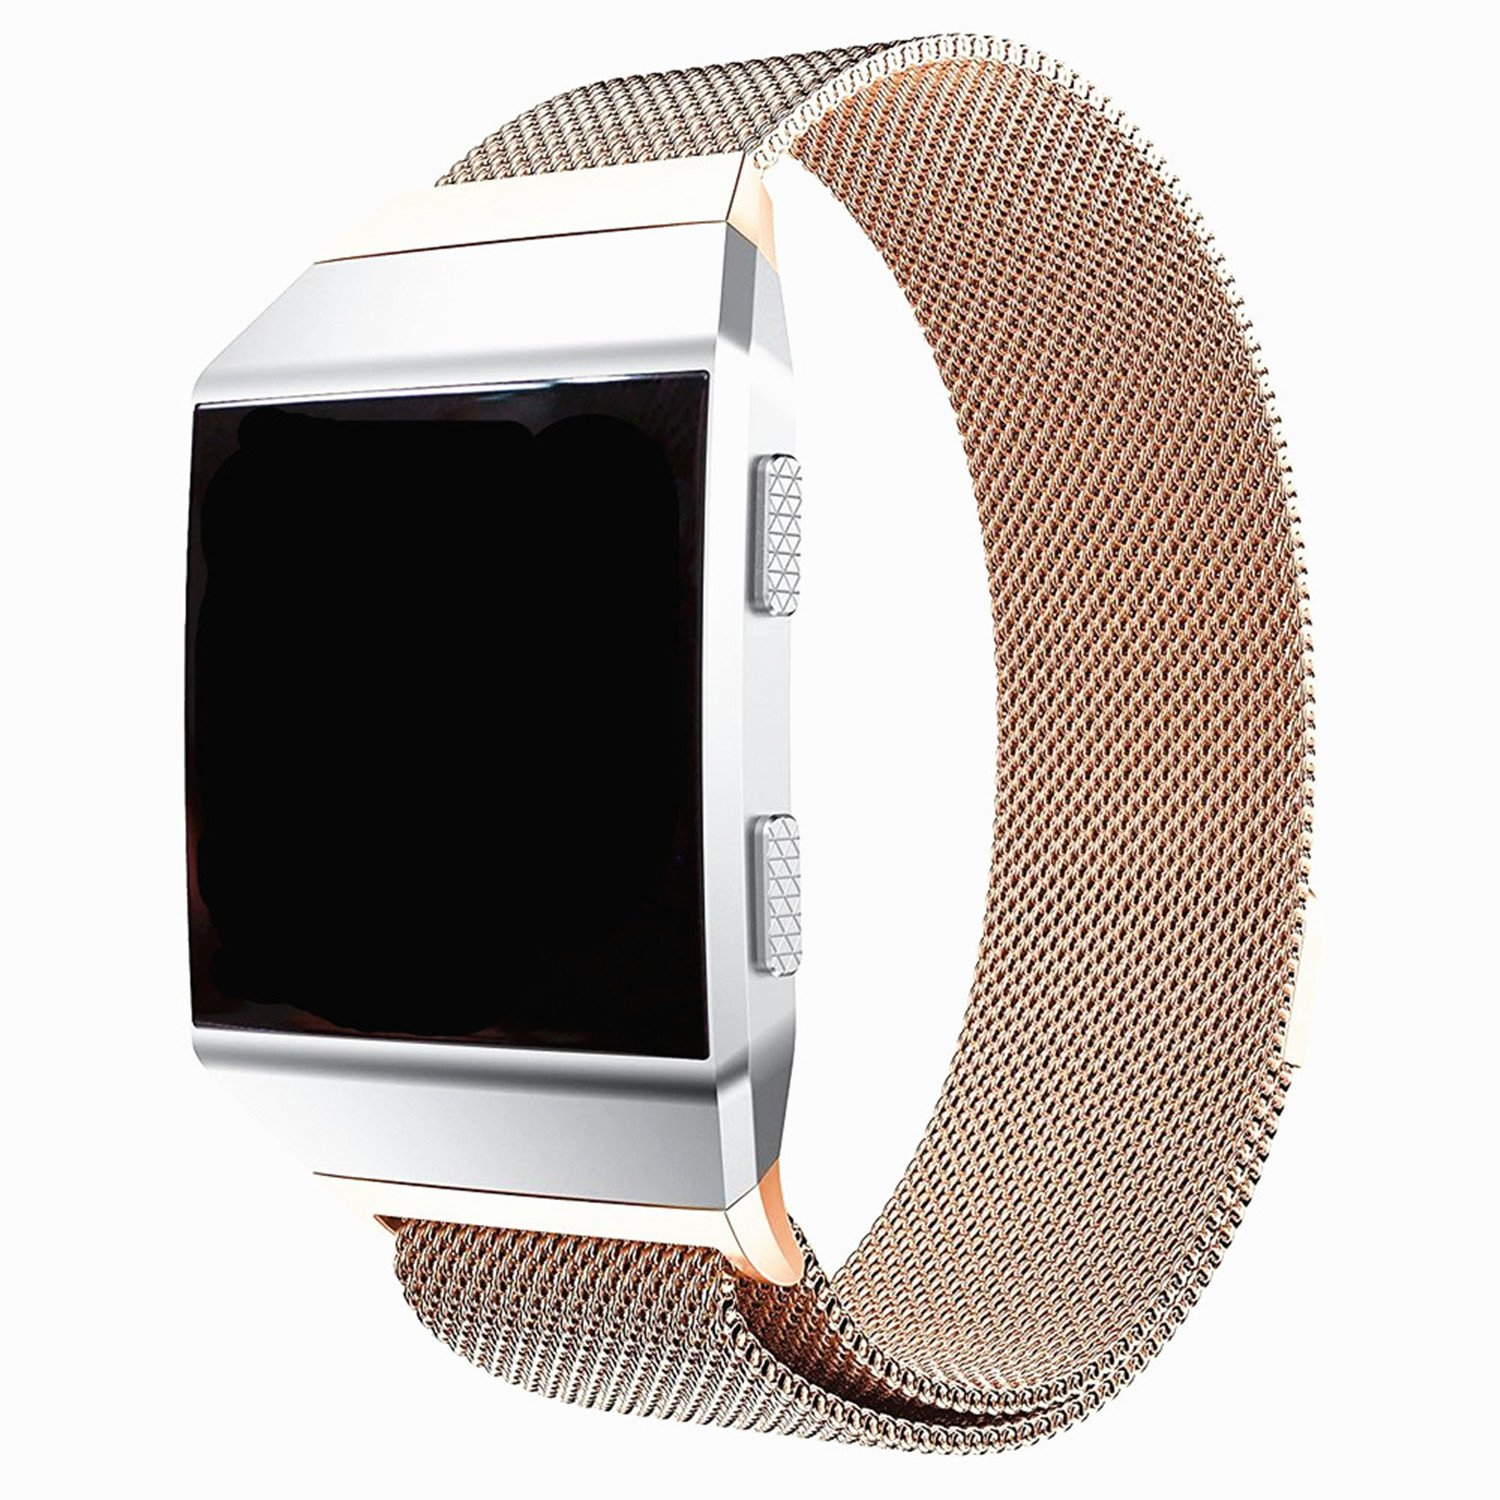 For Fitbit Ionic Bands Small and Largeサイズforレディースメンズ、yuliker強力な磁気クラスプMilaneseステンレススチールバンドfor Fitbit Ionic Smartwatch複数色 B077PRZHZM Rose-Gold Large Size-(6.2''-9.8'')